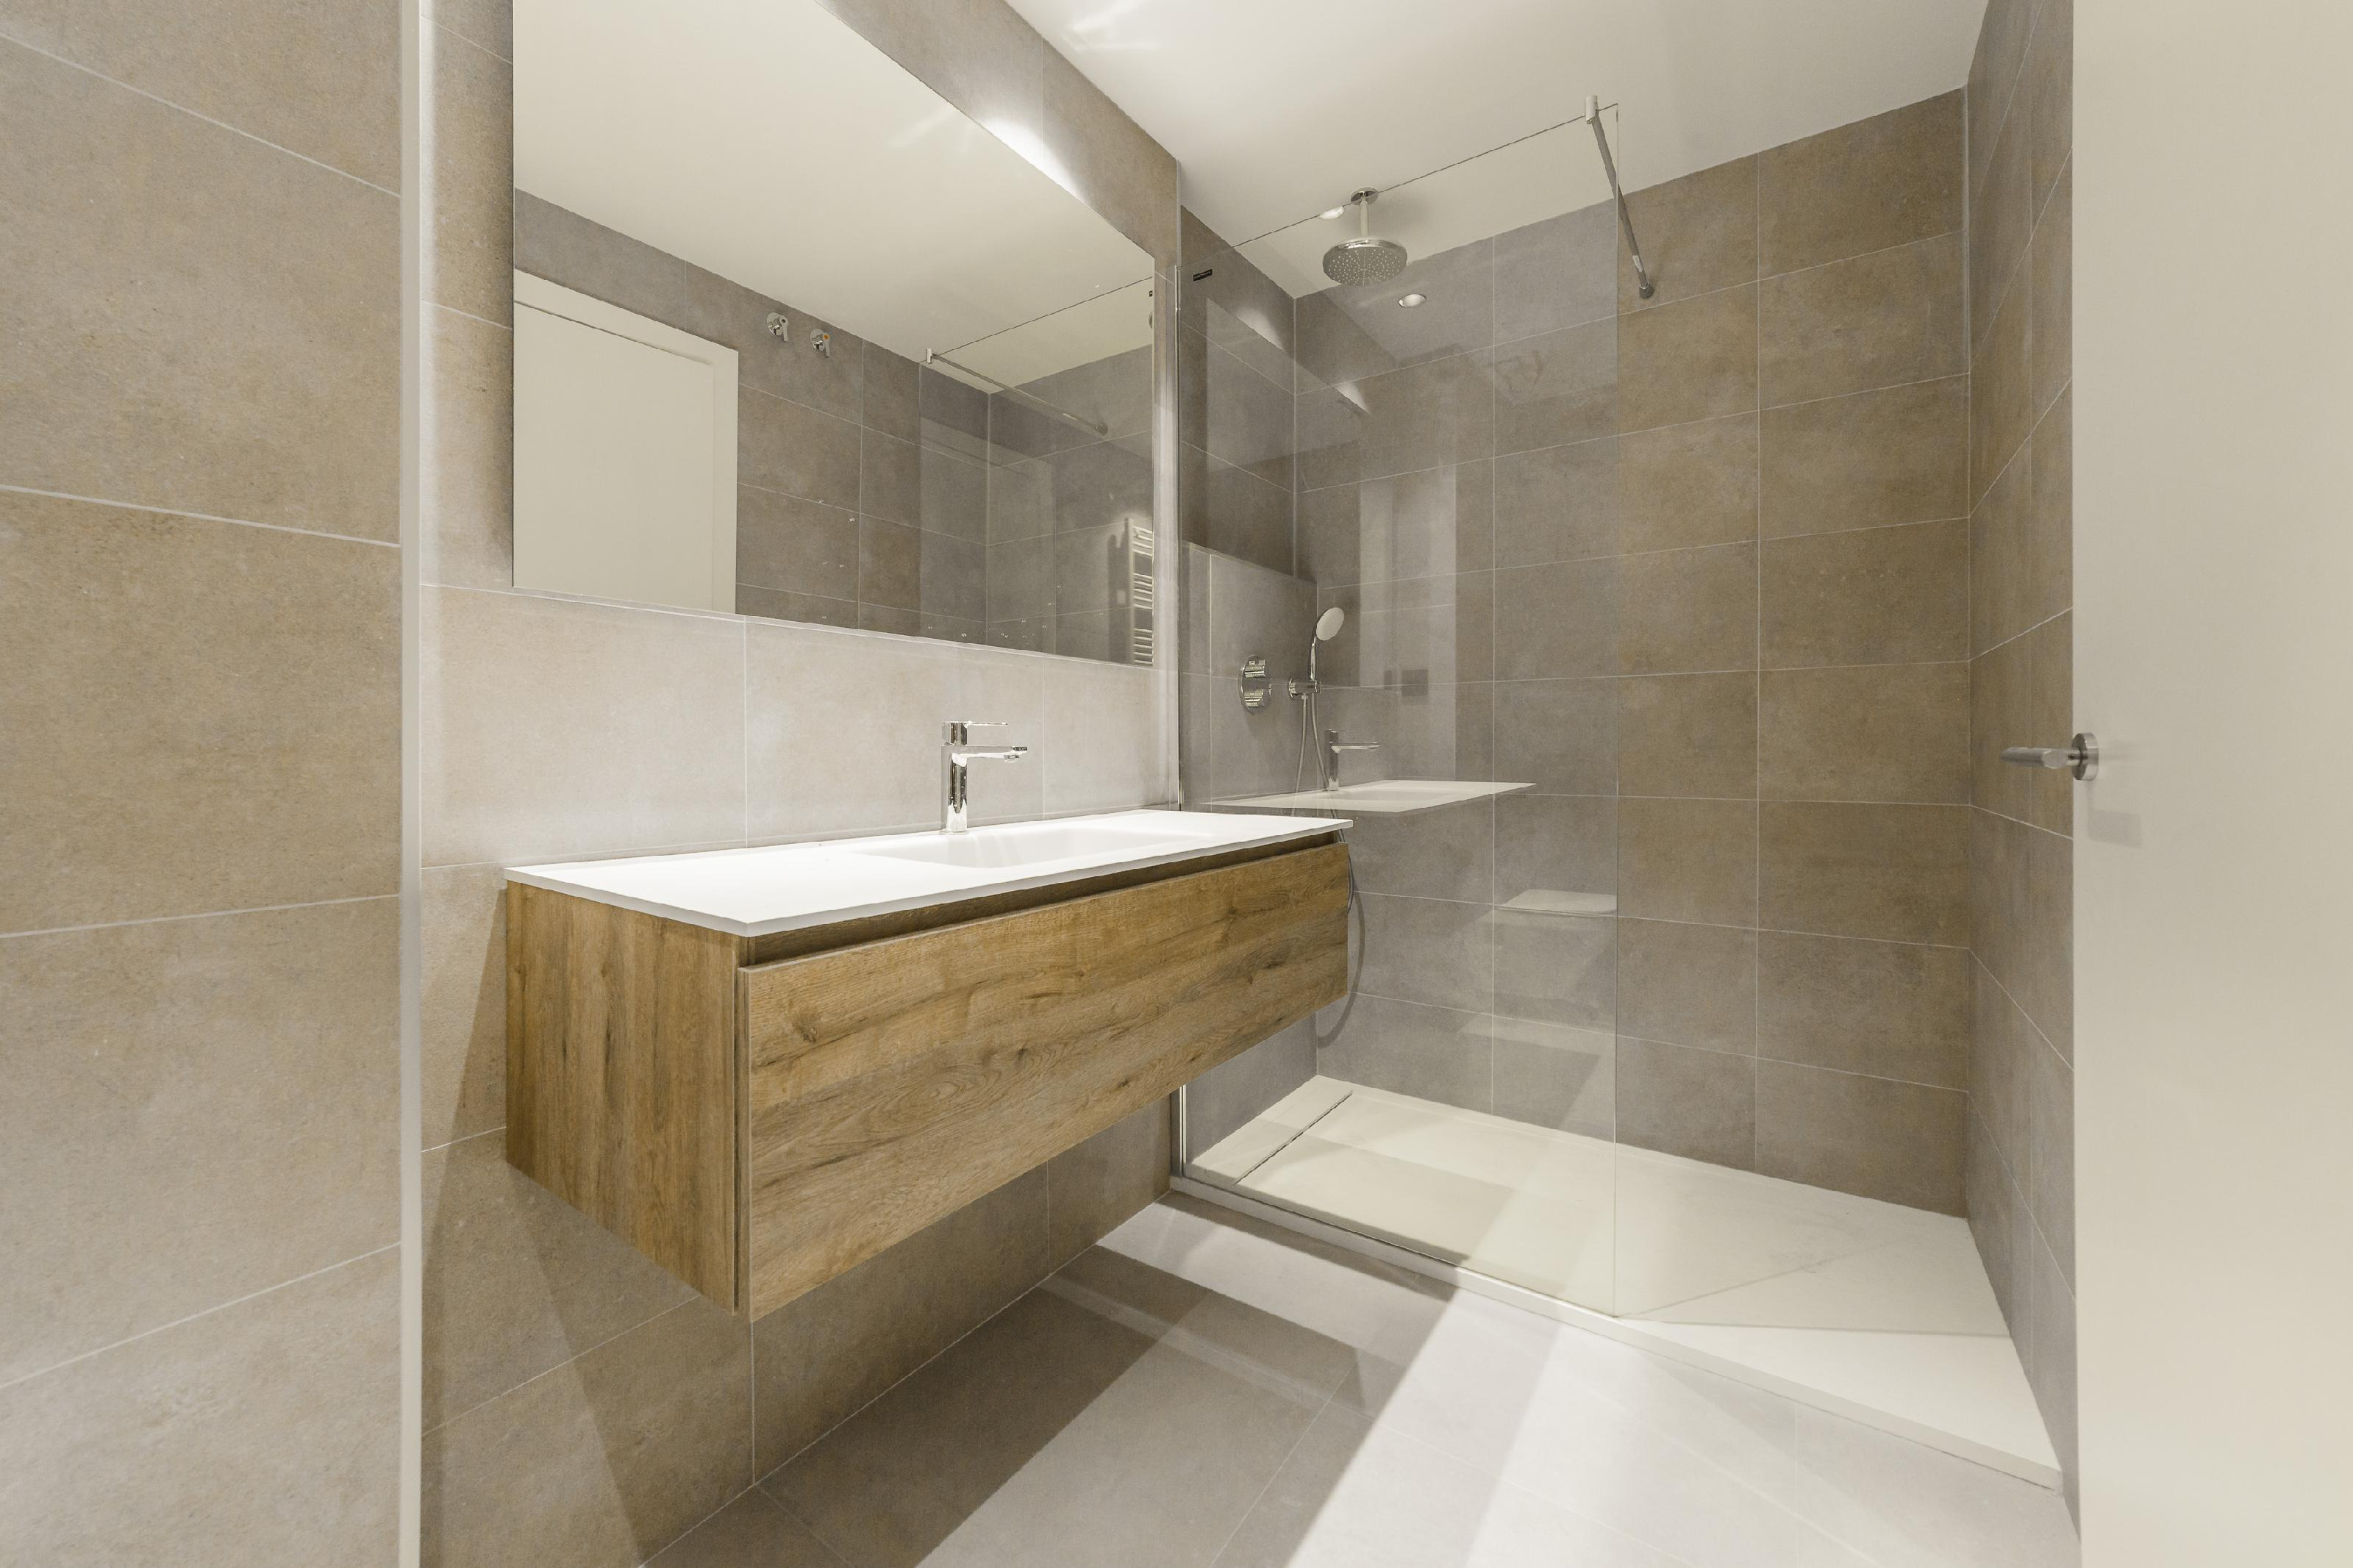 182474 Apartment for sale in Eixample, Old Left Eixample 20